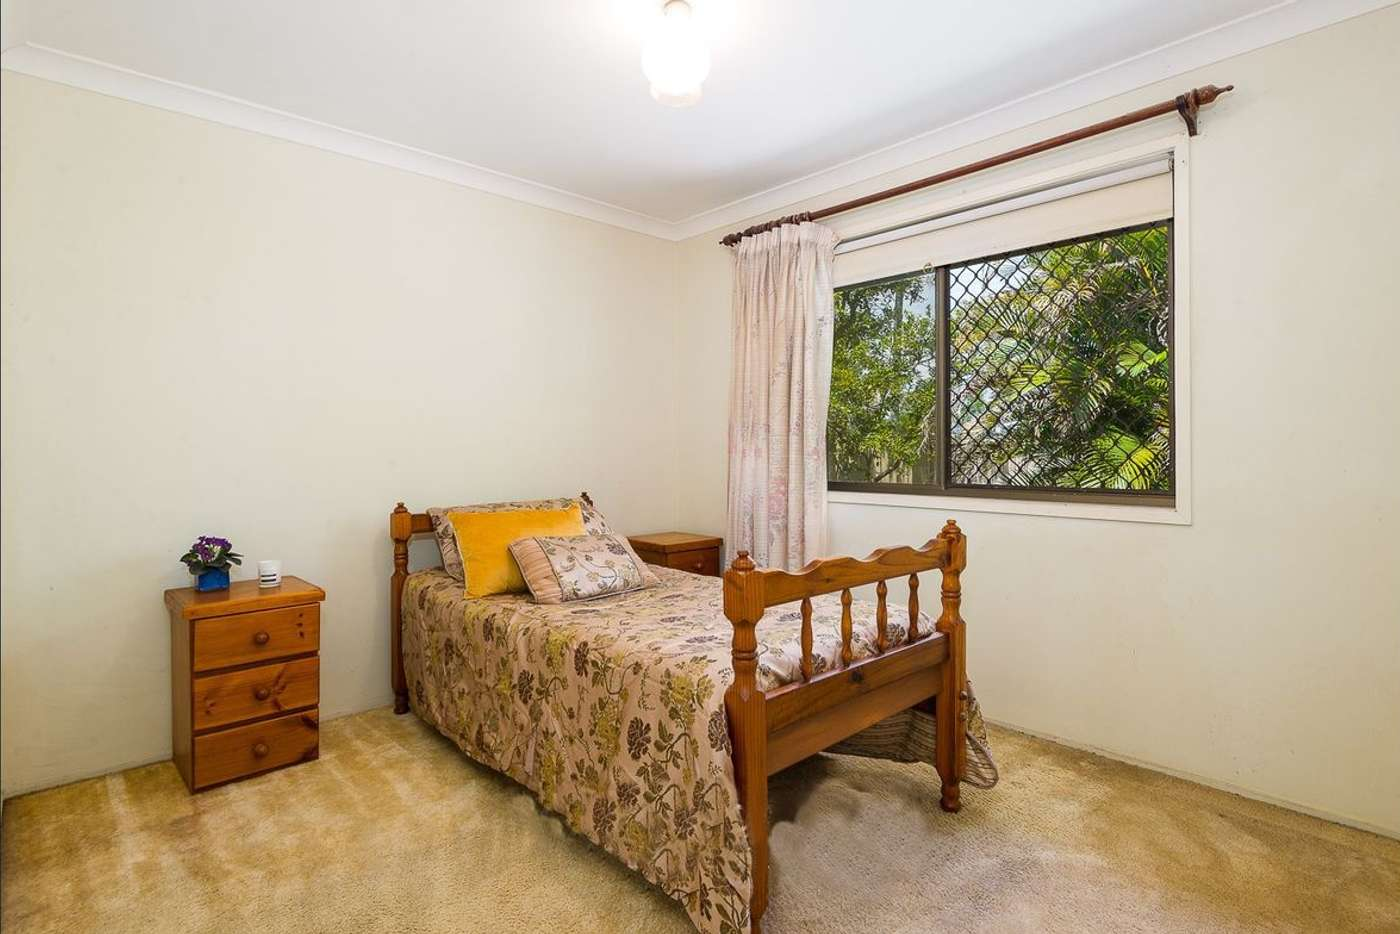 Sixth view of Homely house listing, 59 Begonia Street, Browns Plains QLD 4118